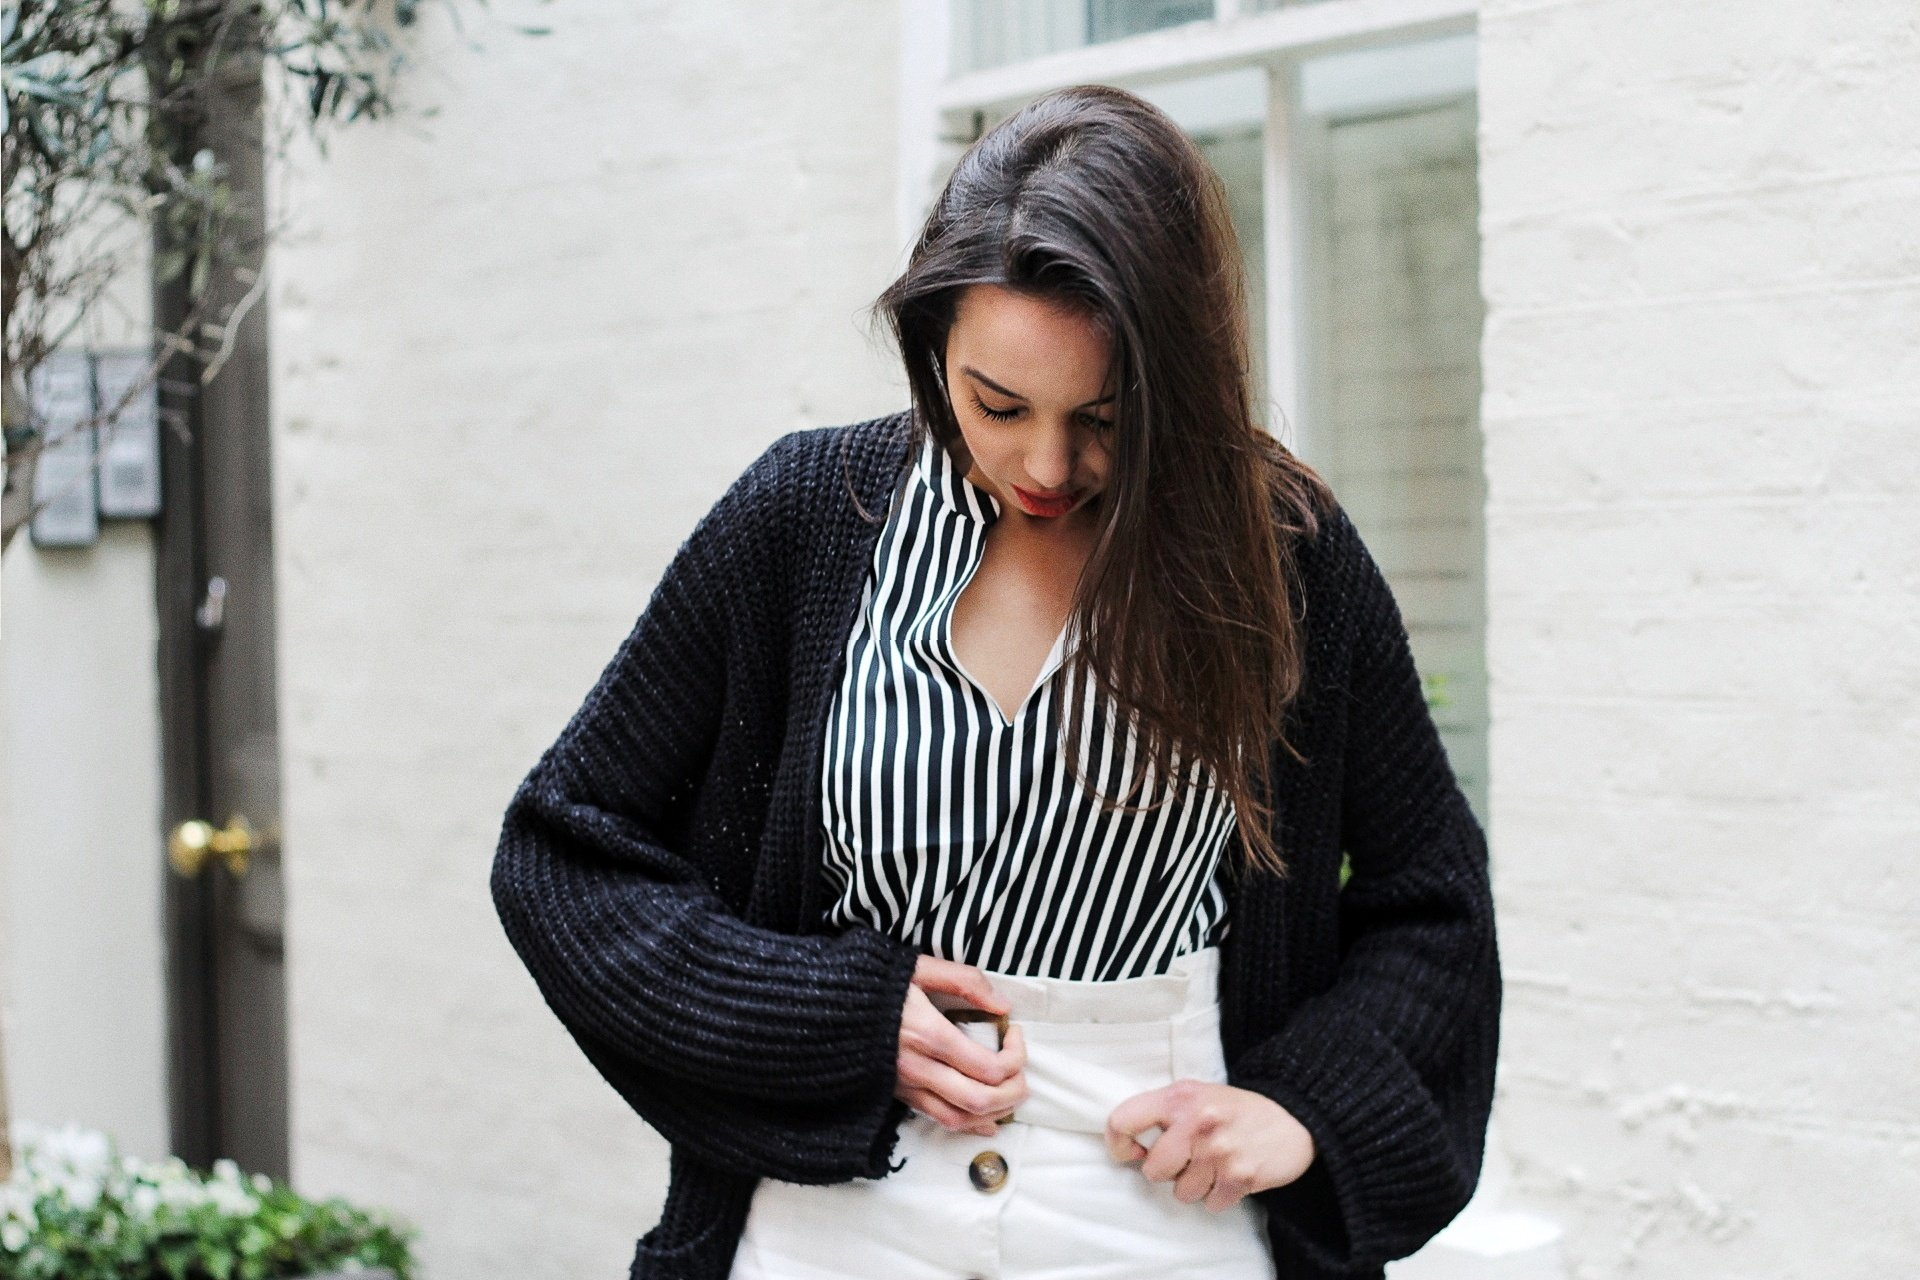 London Instagram locations - The Style of Laura Jane